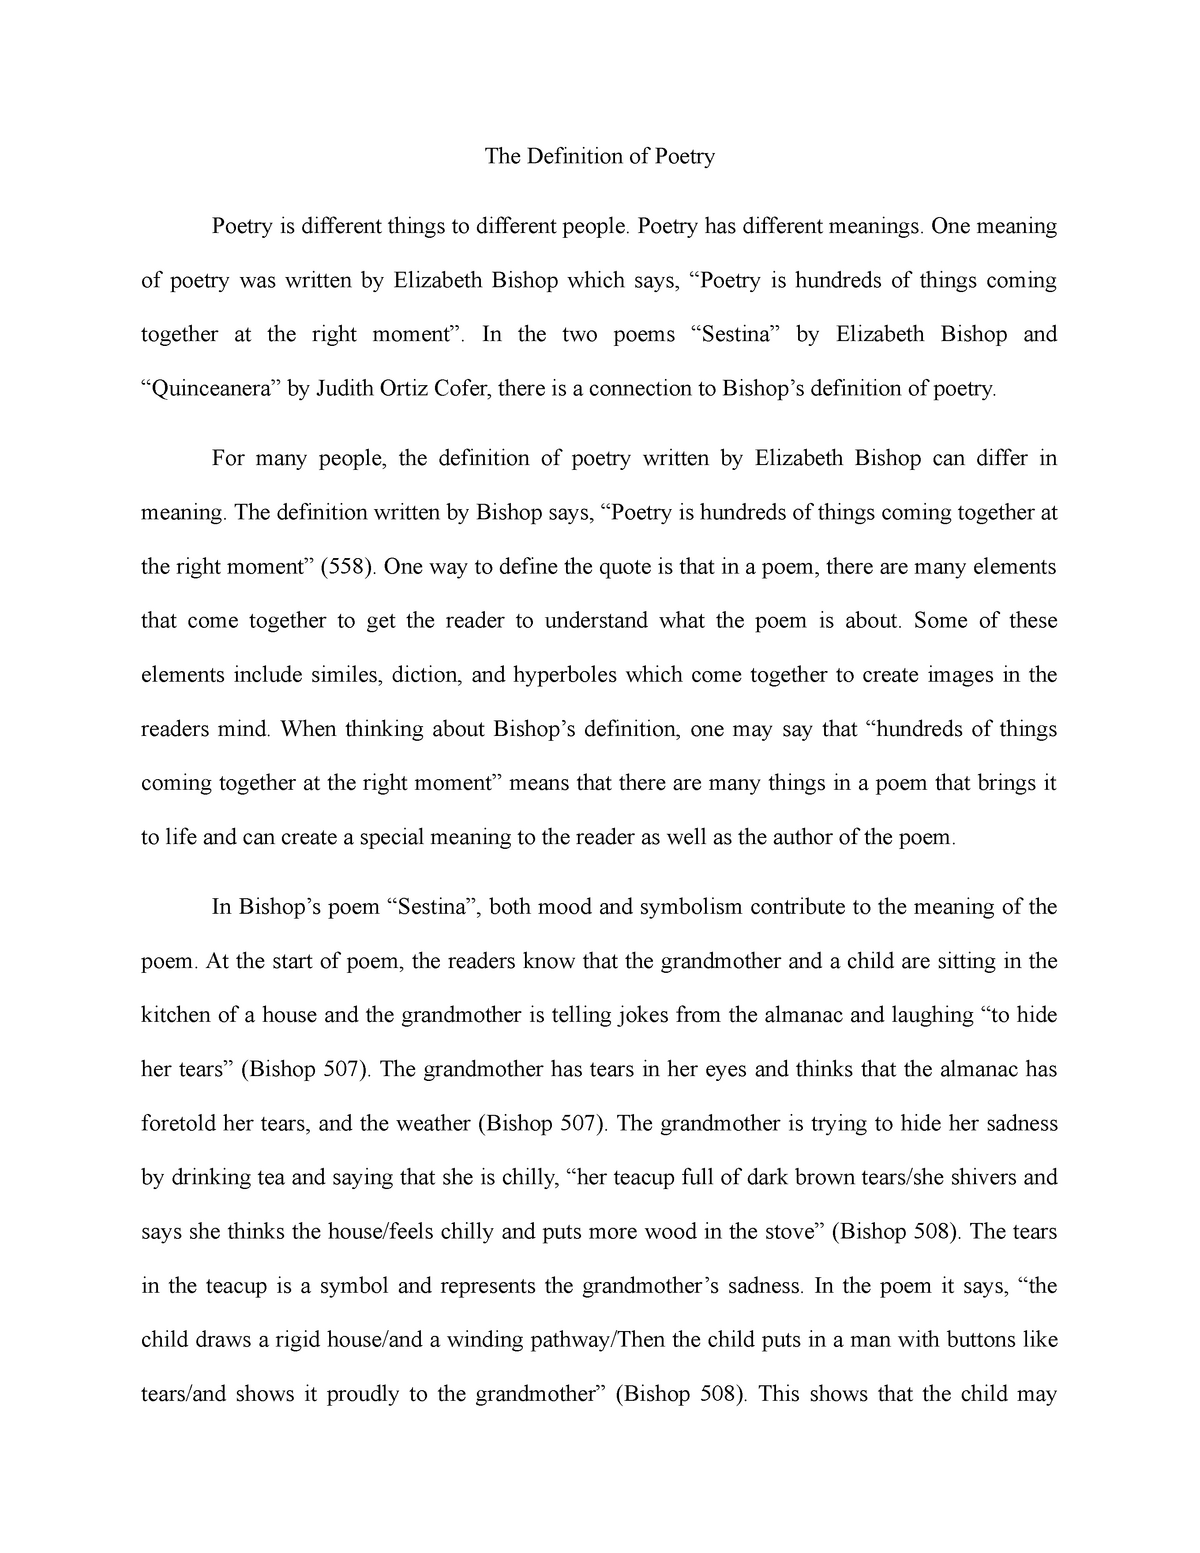 Essay #2-English 201 - Grade: A - ENG 201: Introduction To